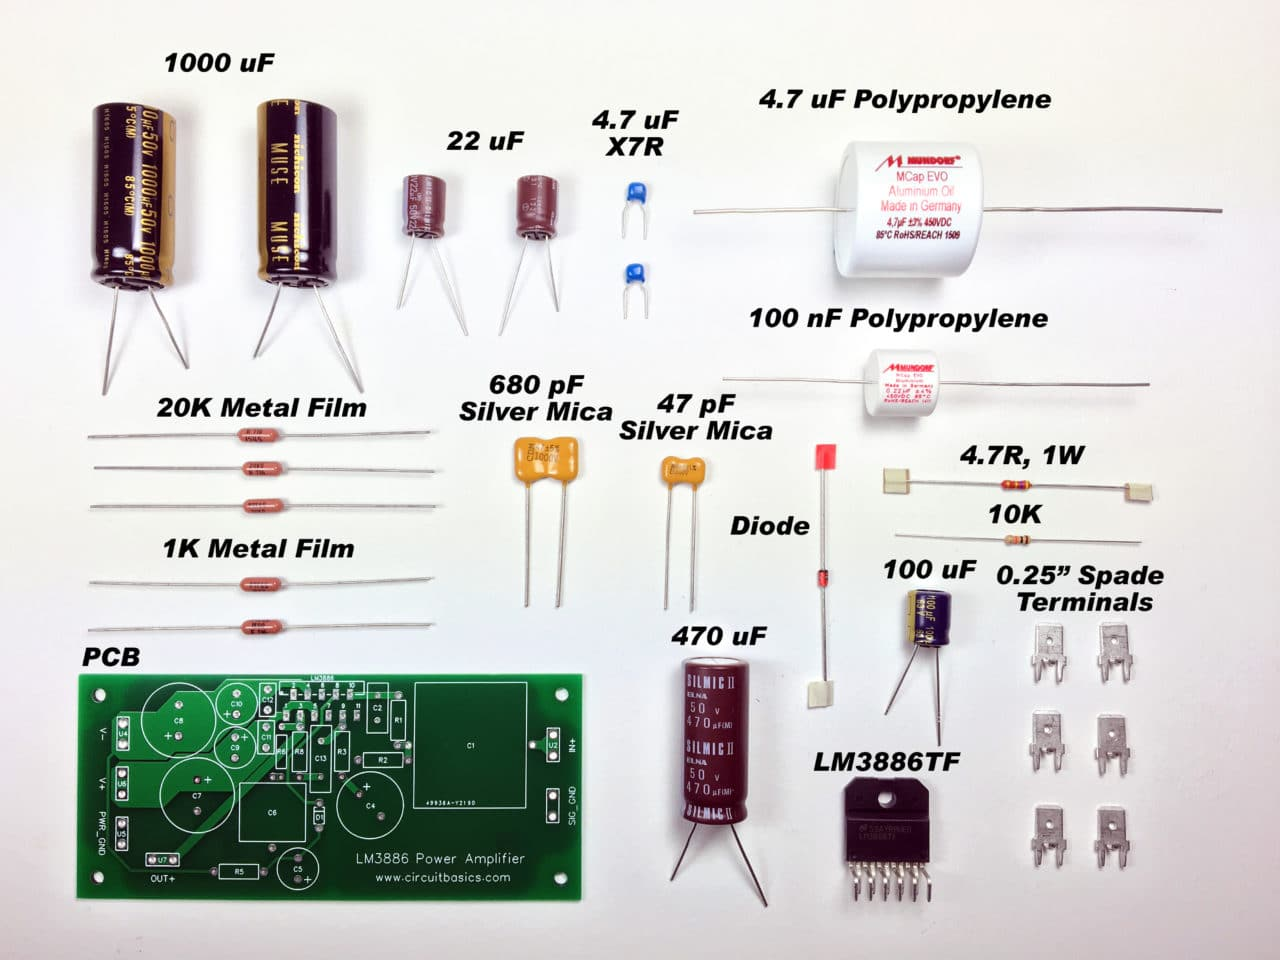 A Complete Guide To Design And Build Hi Fi Lm3886 Amplifier Small Projects Electronic Circuit The Total Cost Came About 118 For Both Channels Not Including Chassis Power Supply Wiring Parts You Can It Lot Less With Cheaper